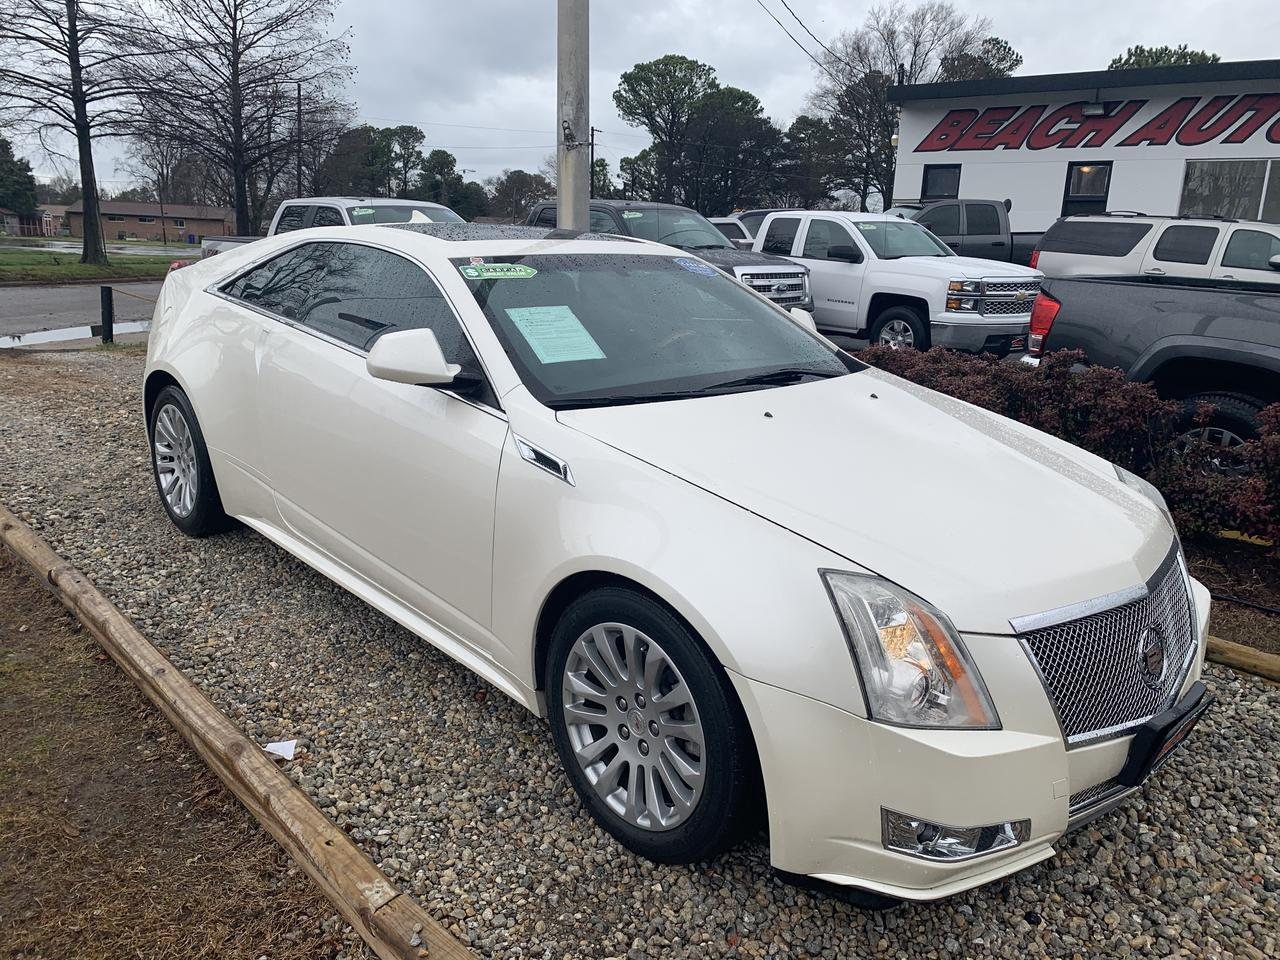 2011 CADILLAC CTS COUPE 4 PREMIUM, WARRANTY, LEATHER, NAV, HEATED SEATS, BACKUP CAM, PARKING SENSORS, SUNROOF, ONSTAR! Norfolk VA